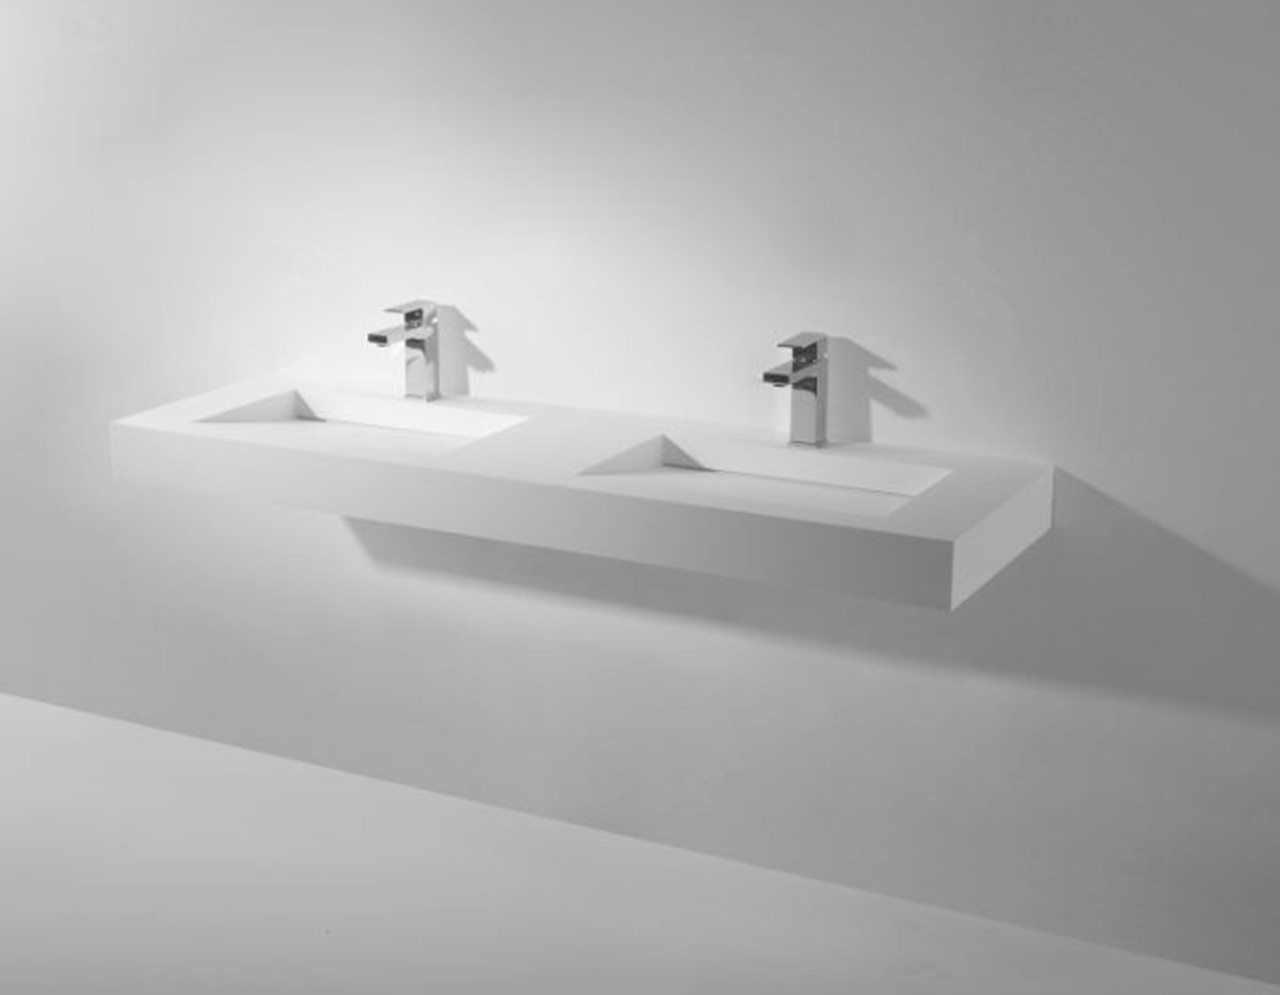 128-280178 SolidSQUARE washbasin 1500x460x100mm